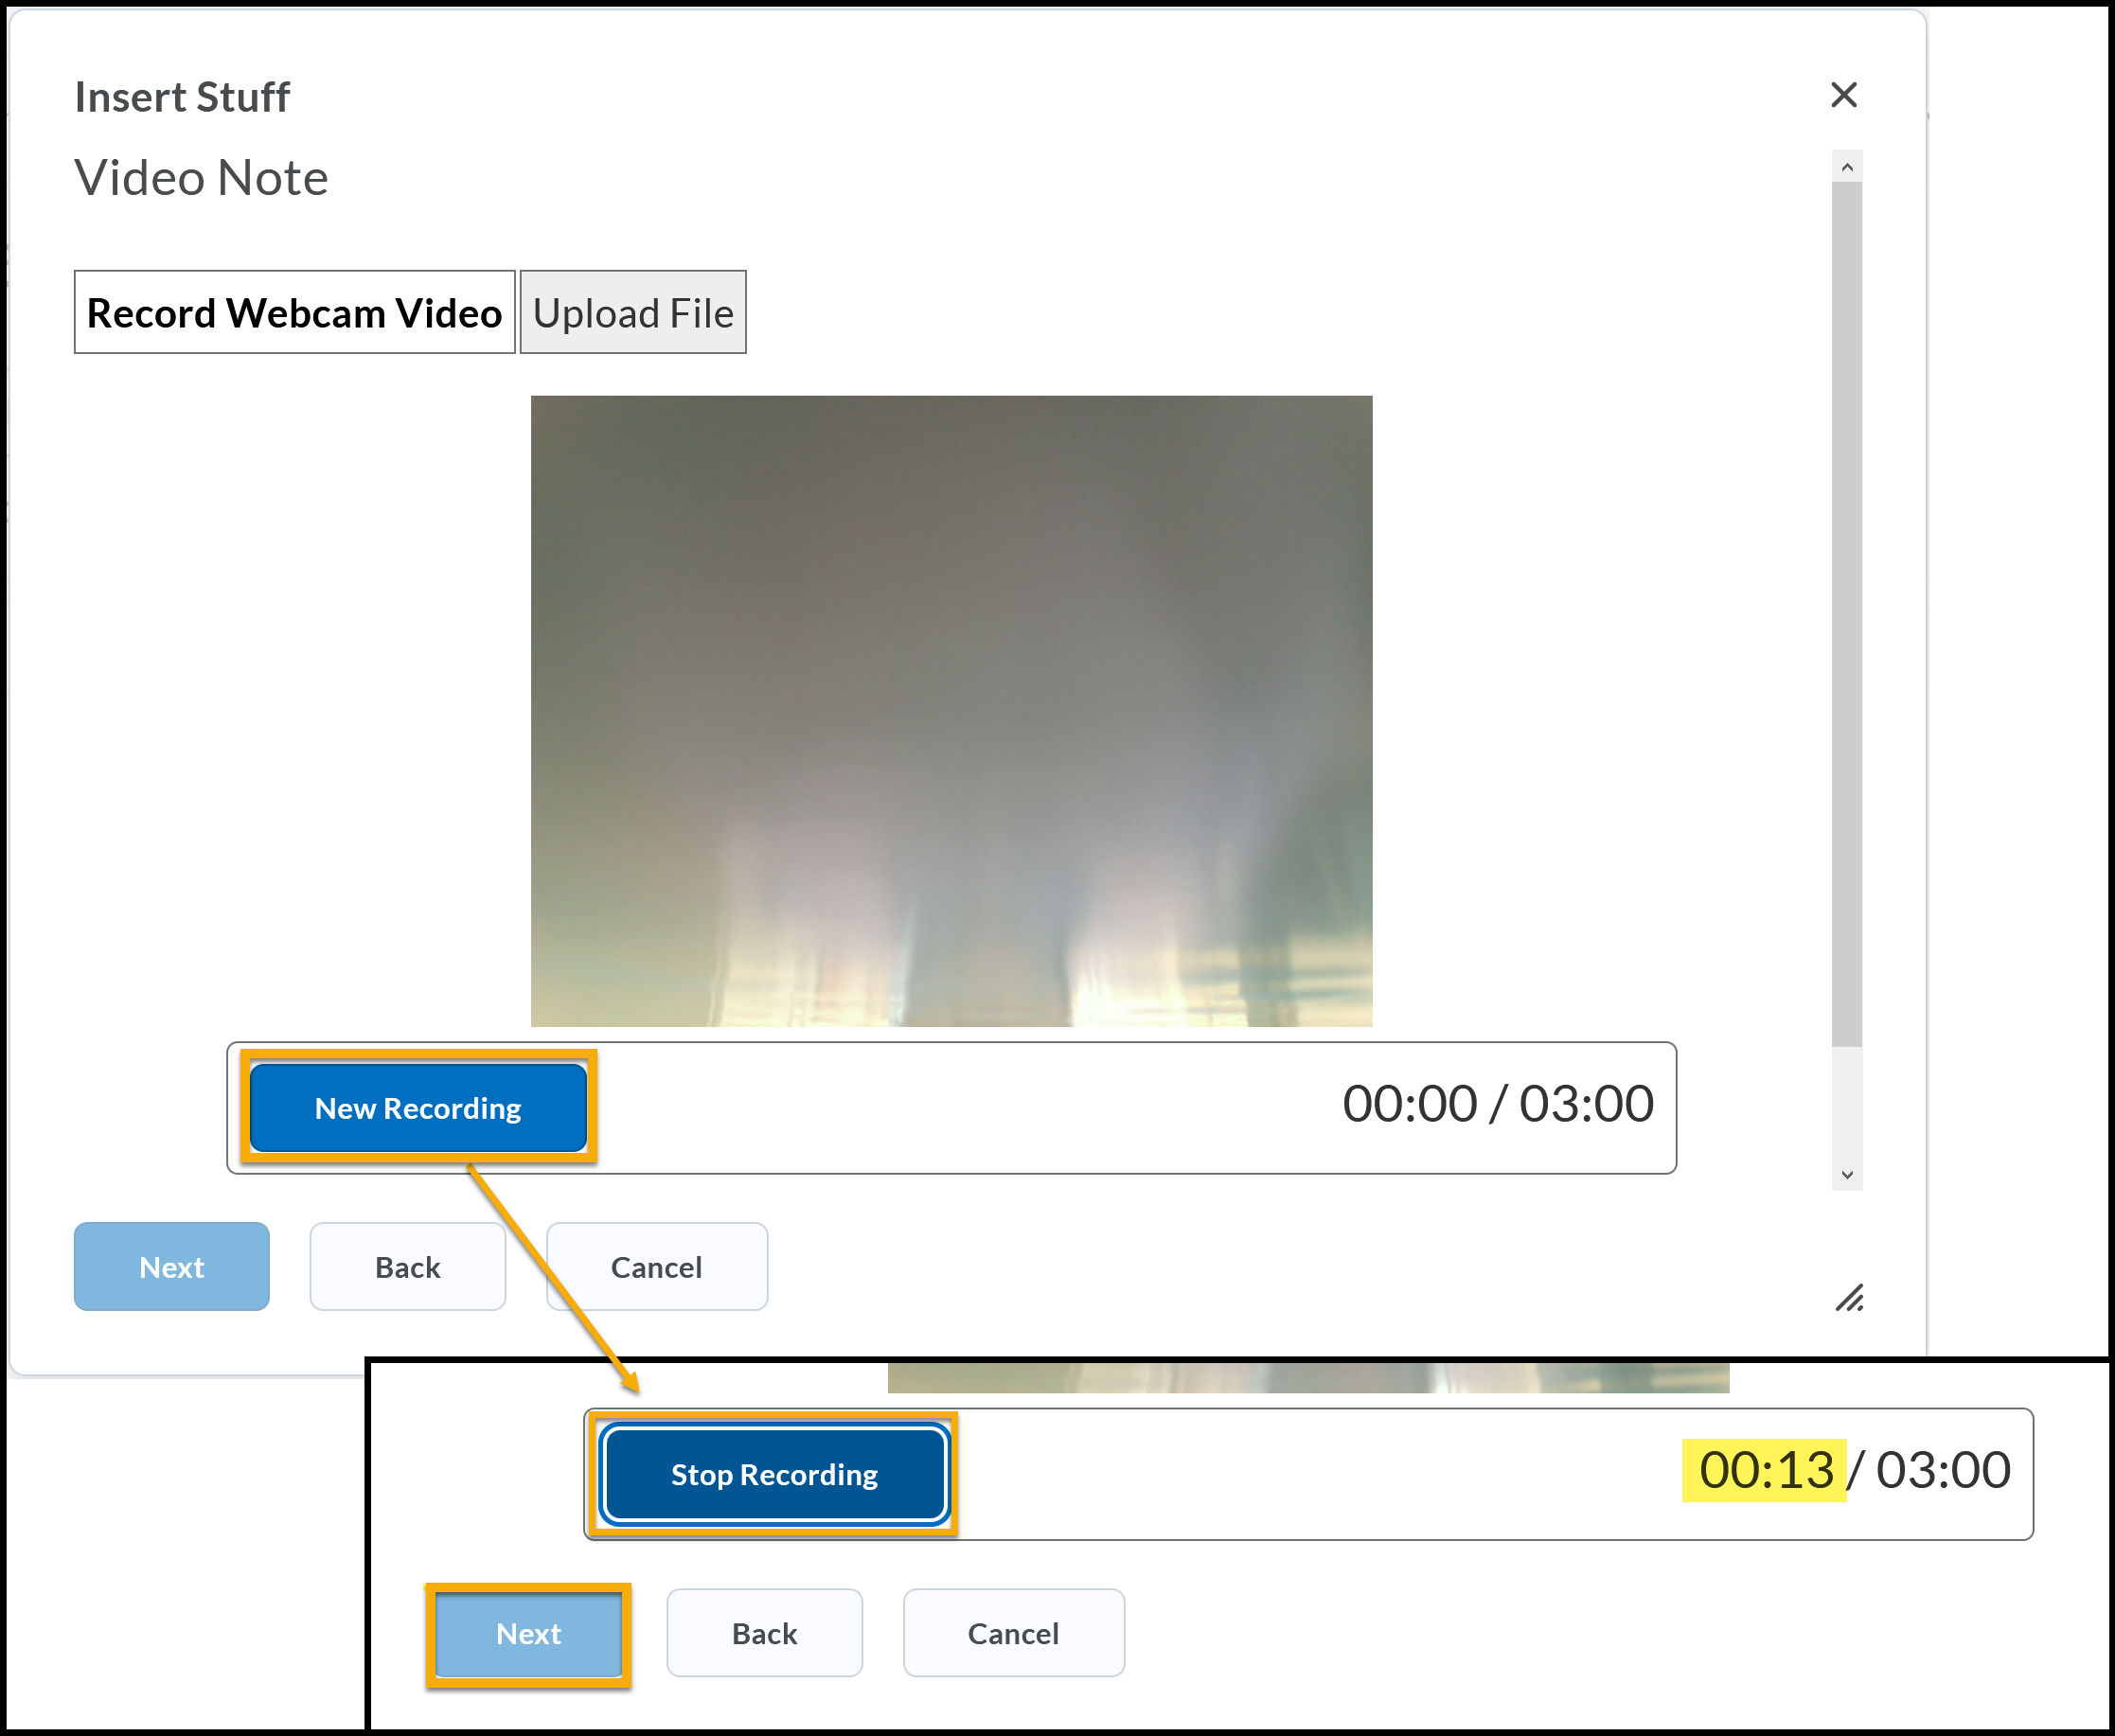 Video Note window open. New Recording highlighted with arrow pointing to recording window. Stop Recording highlighted.